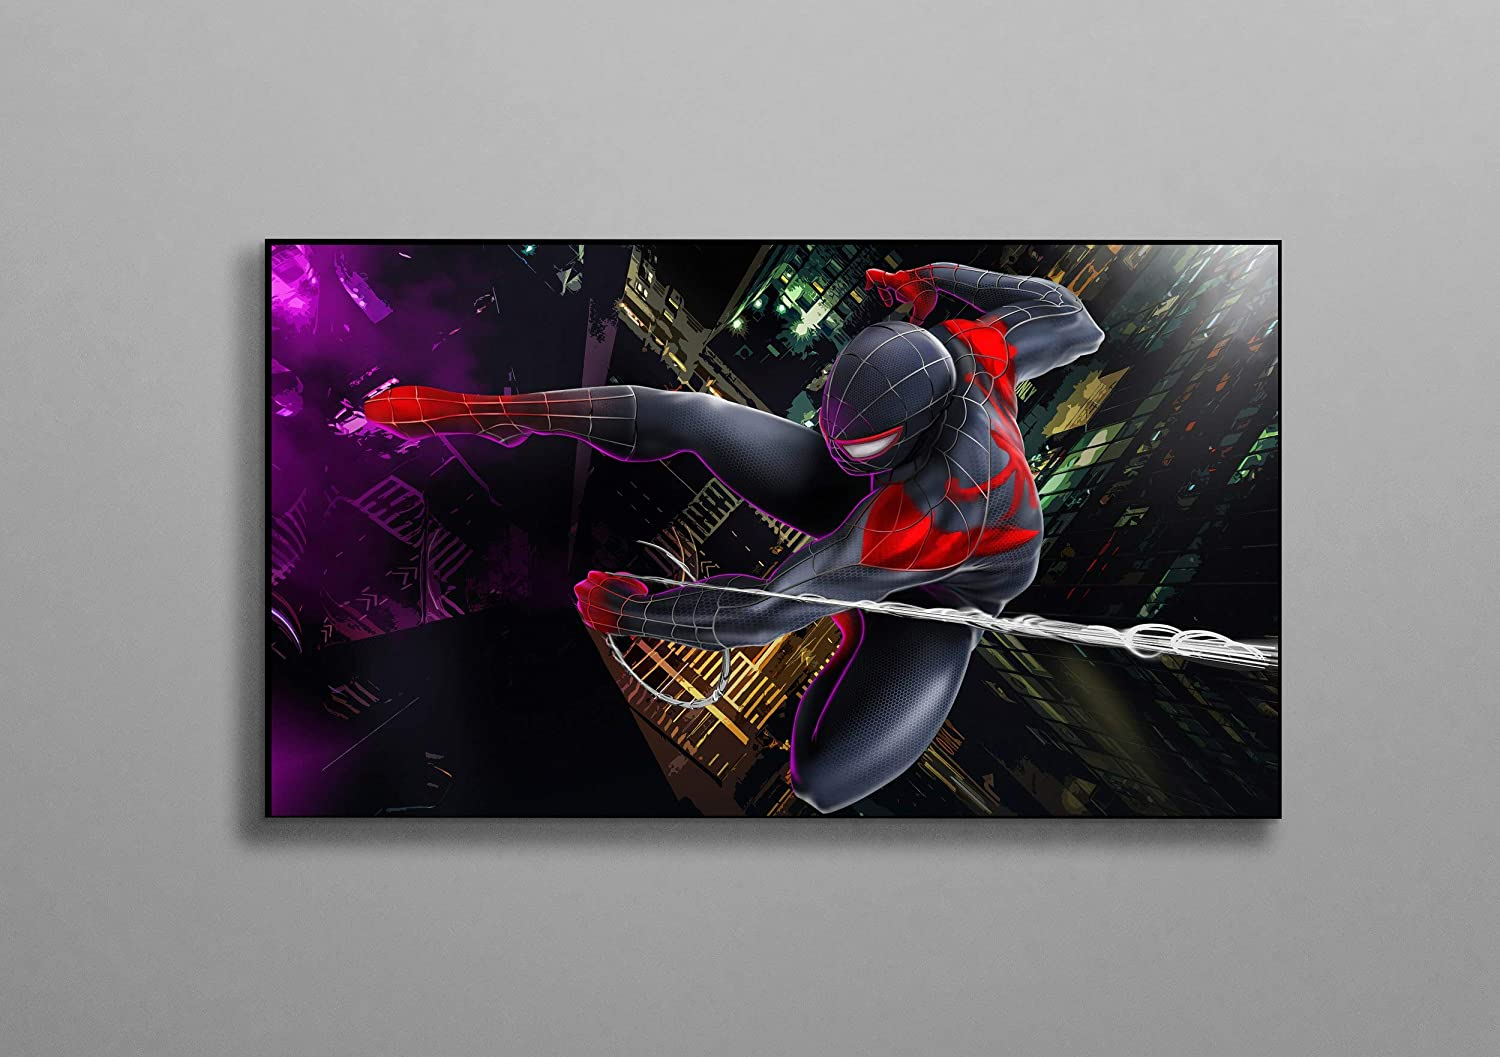 Spiderman Miles Morales Best Poster Wall Decor Print Canvas Art Wall Art Print Gift Unframed Printing Size - 11